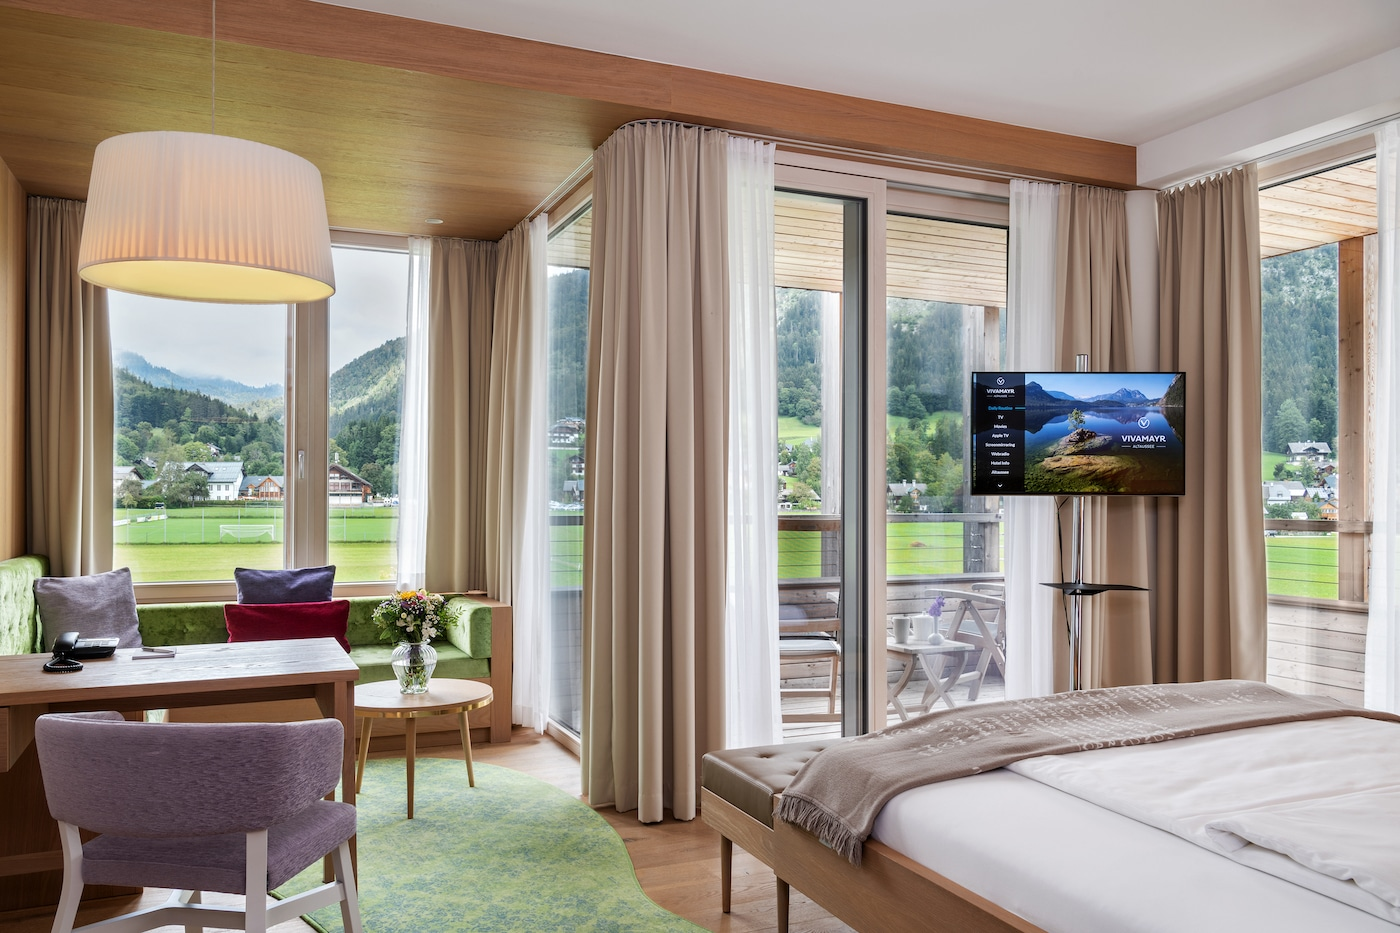 wide windows in Deluxe room with mountains view at VIVAMAYR Altausee